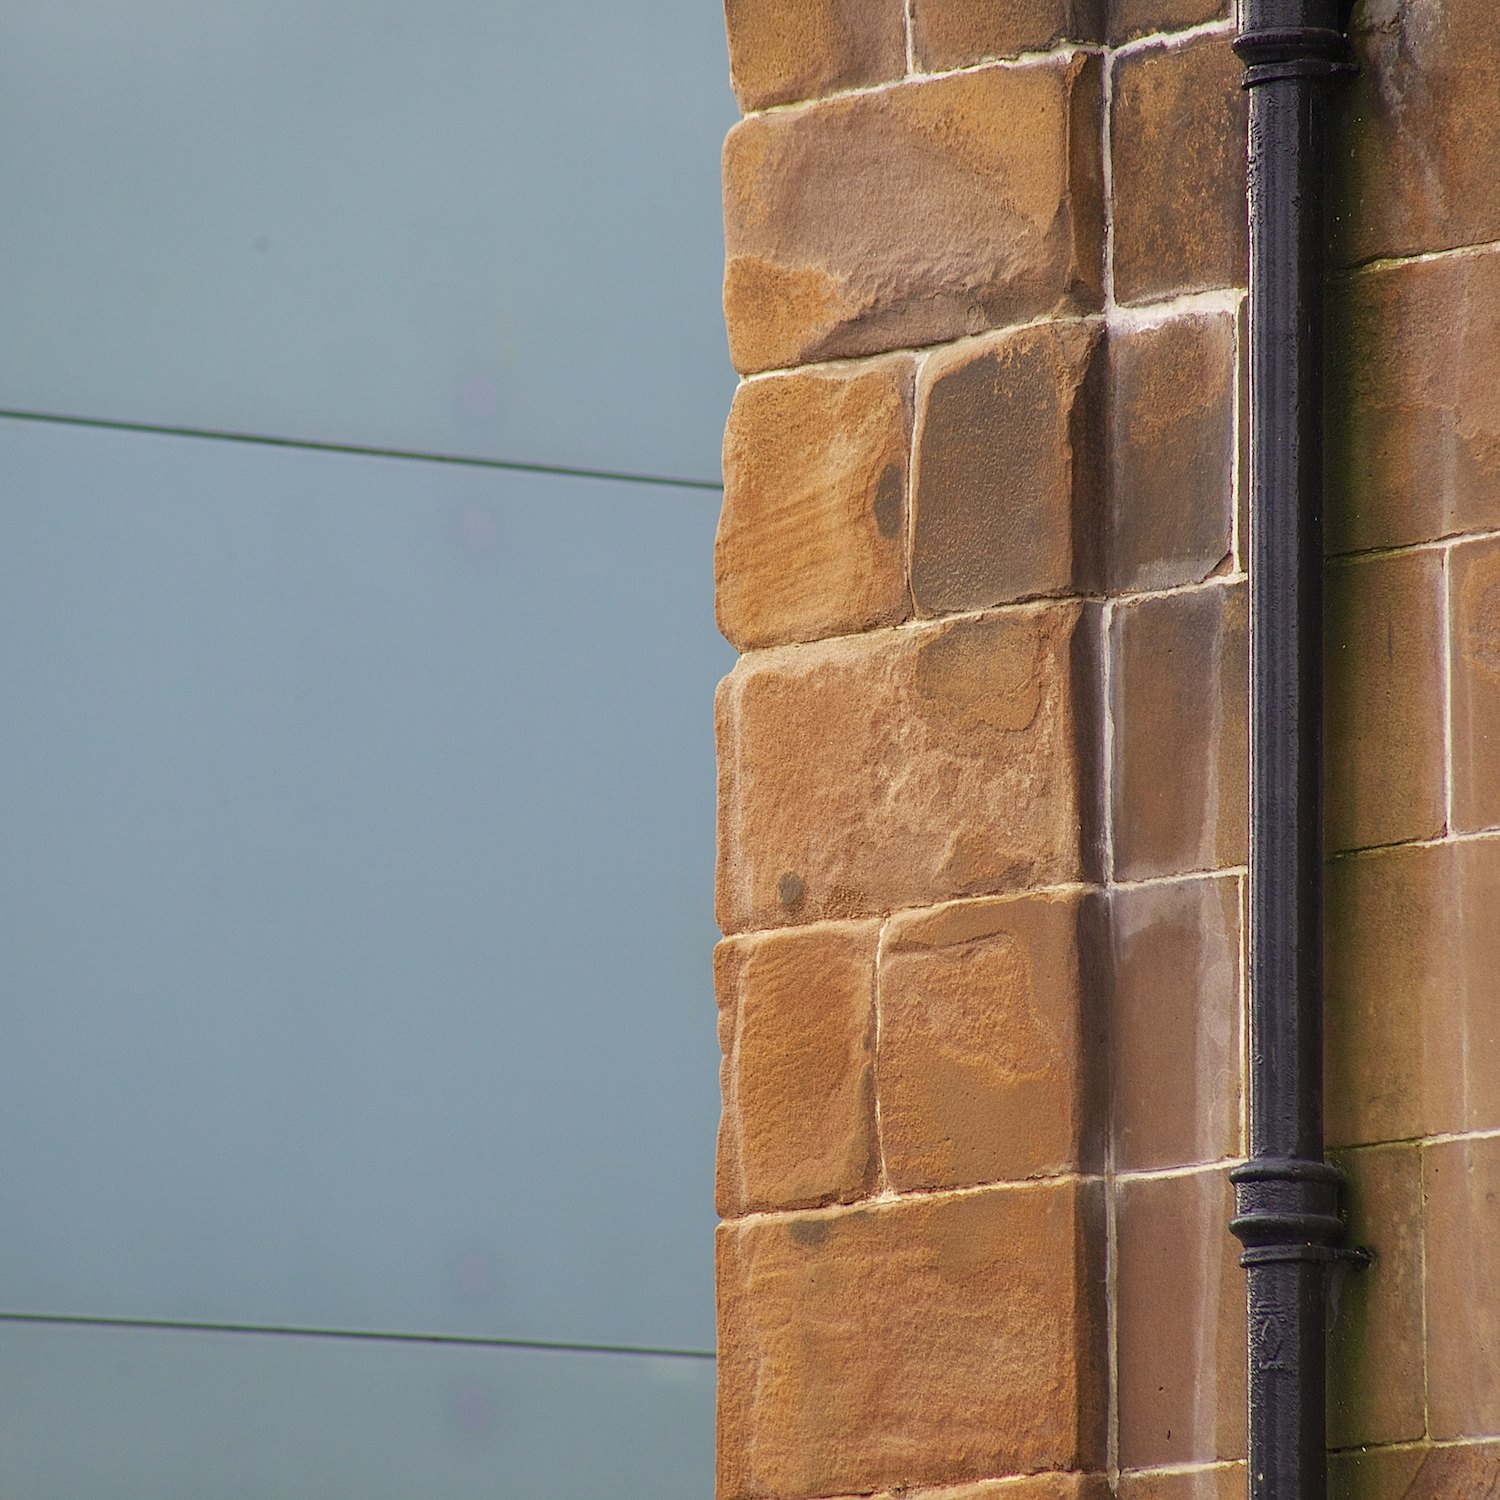 Christopher-Swan-glasgow-abstract 122014-03-08.jpg